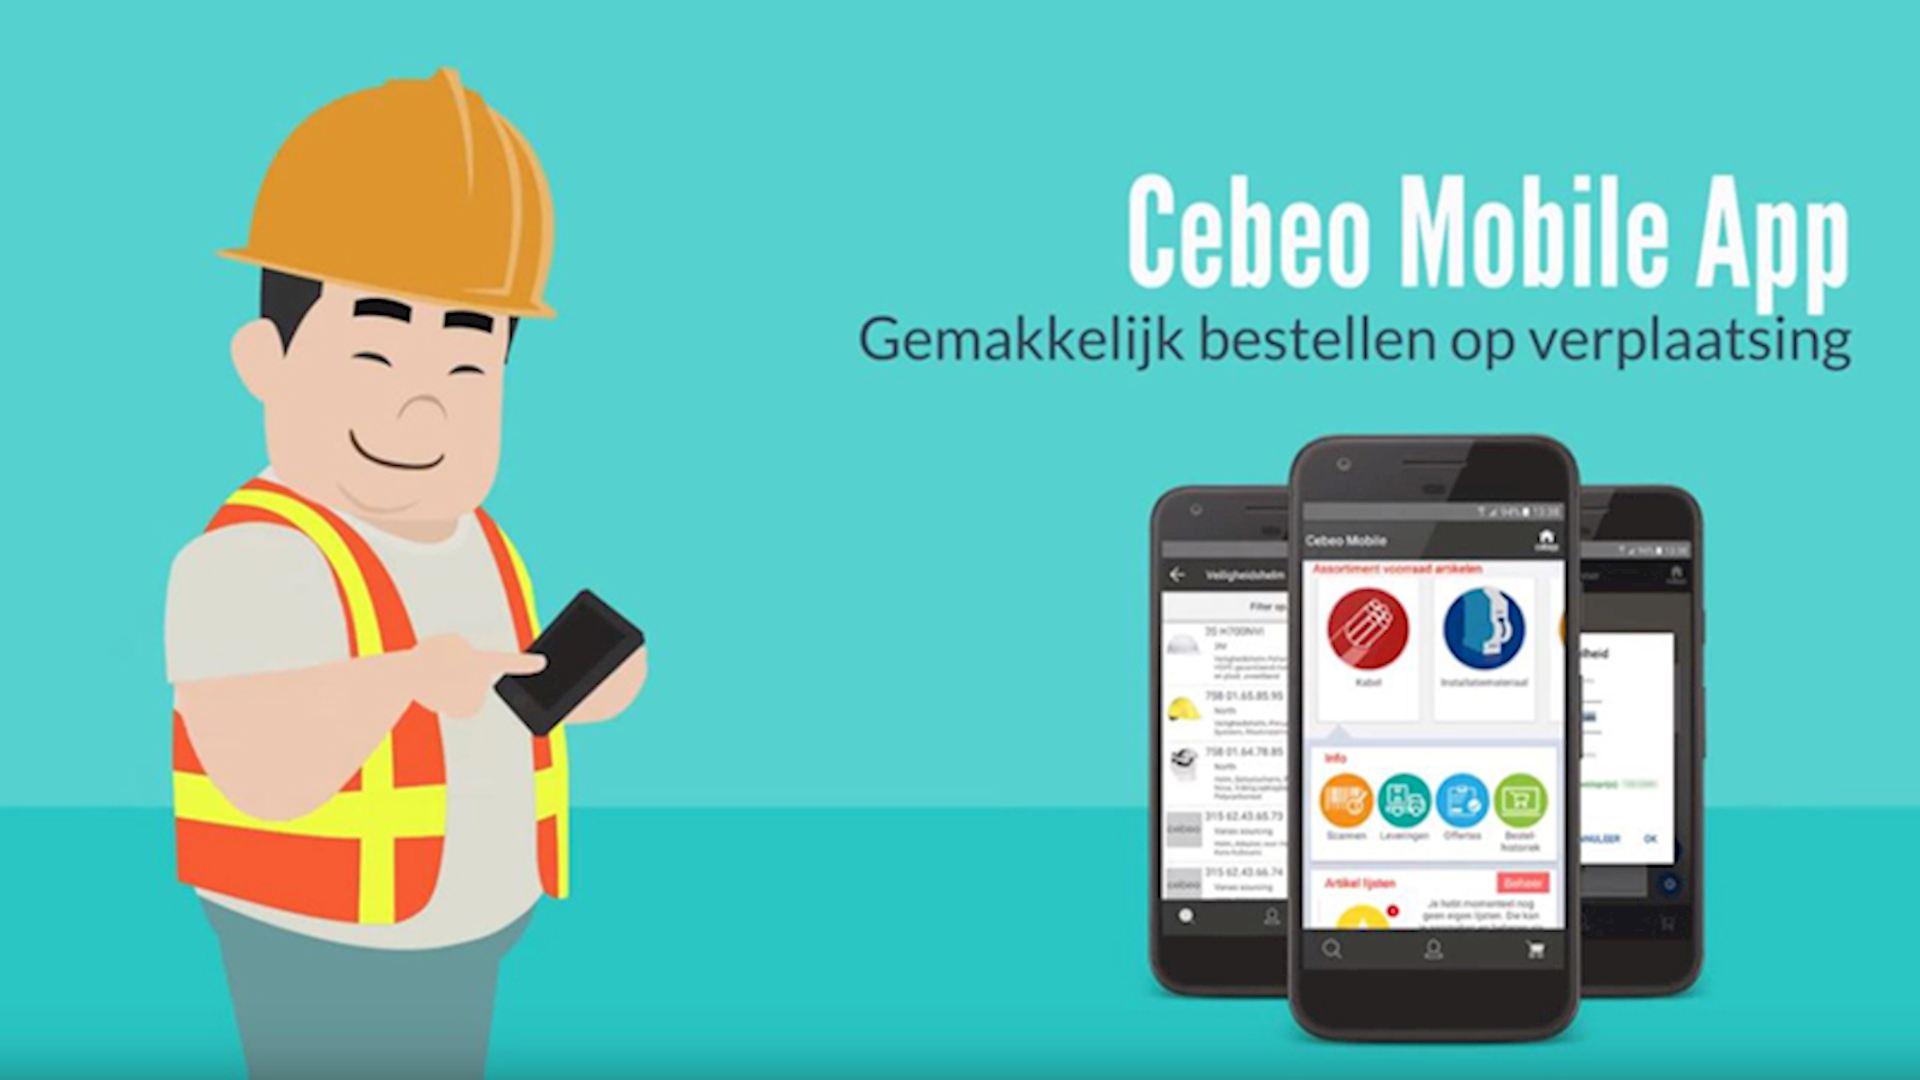 Cebeo Mobile App - Commander (01:04)